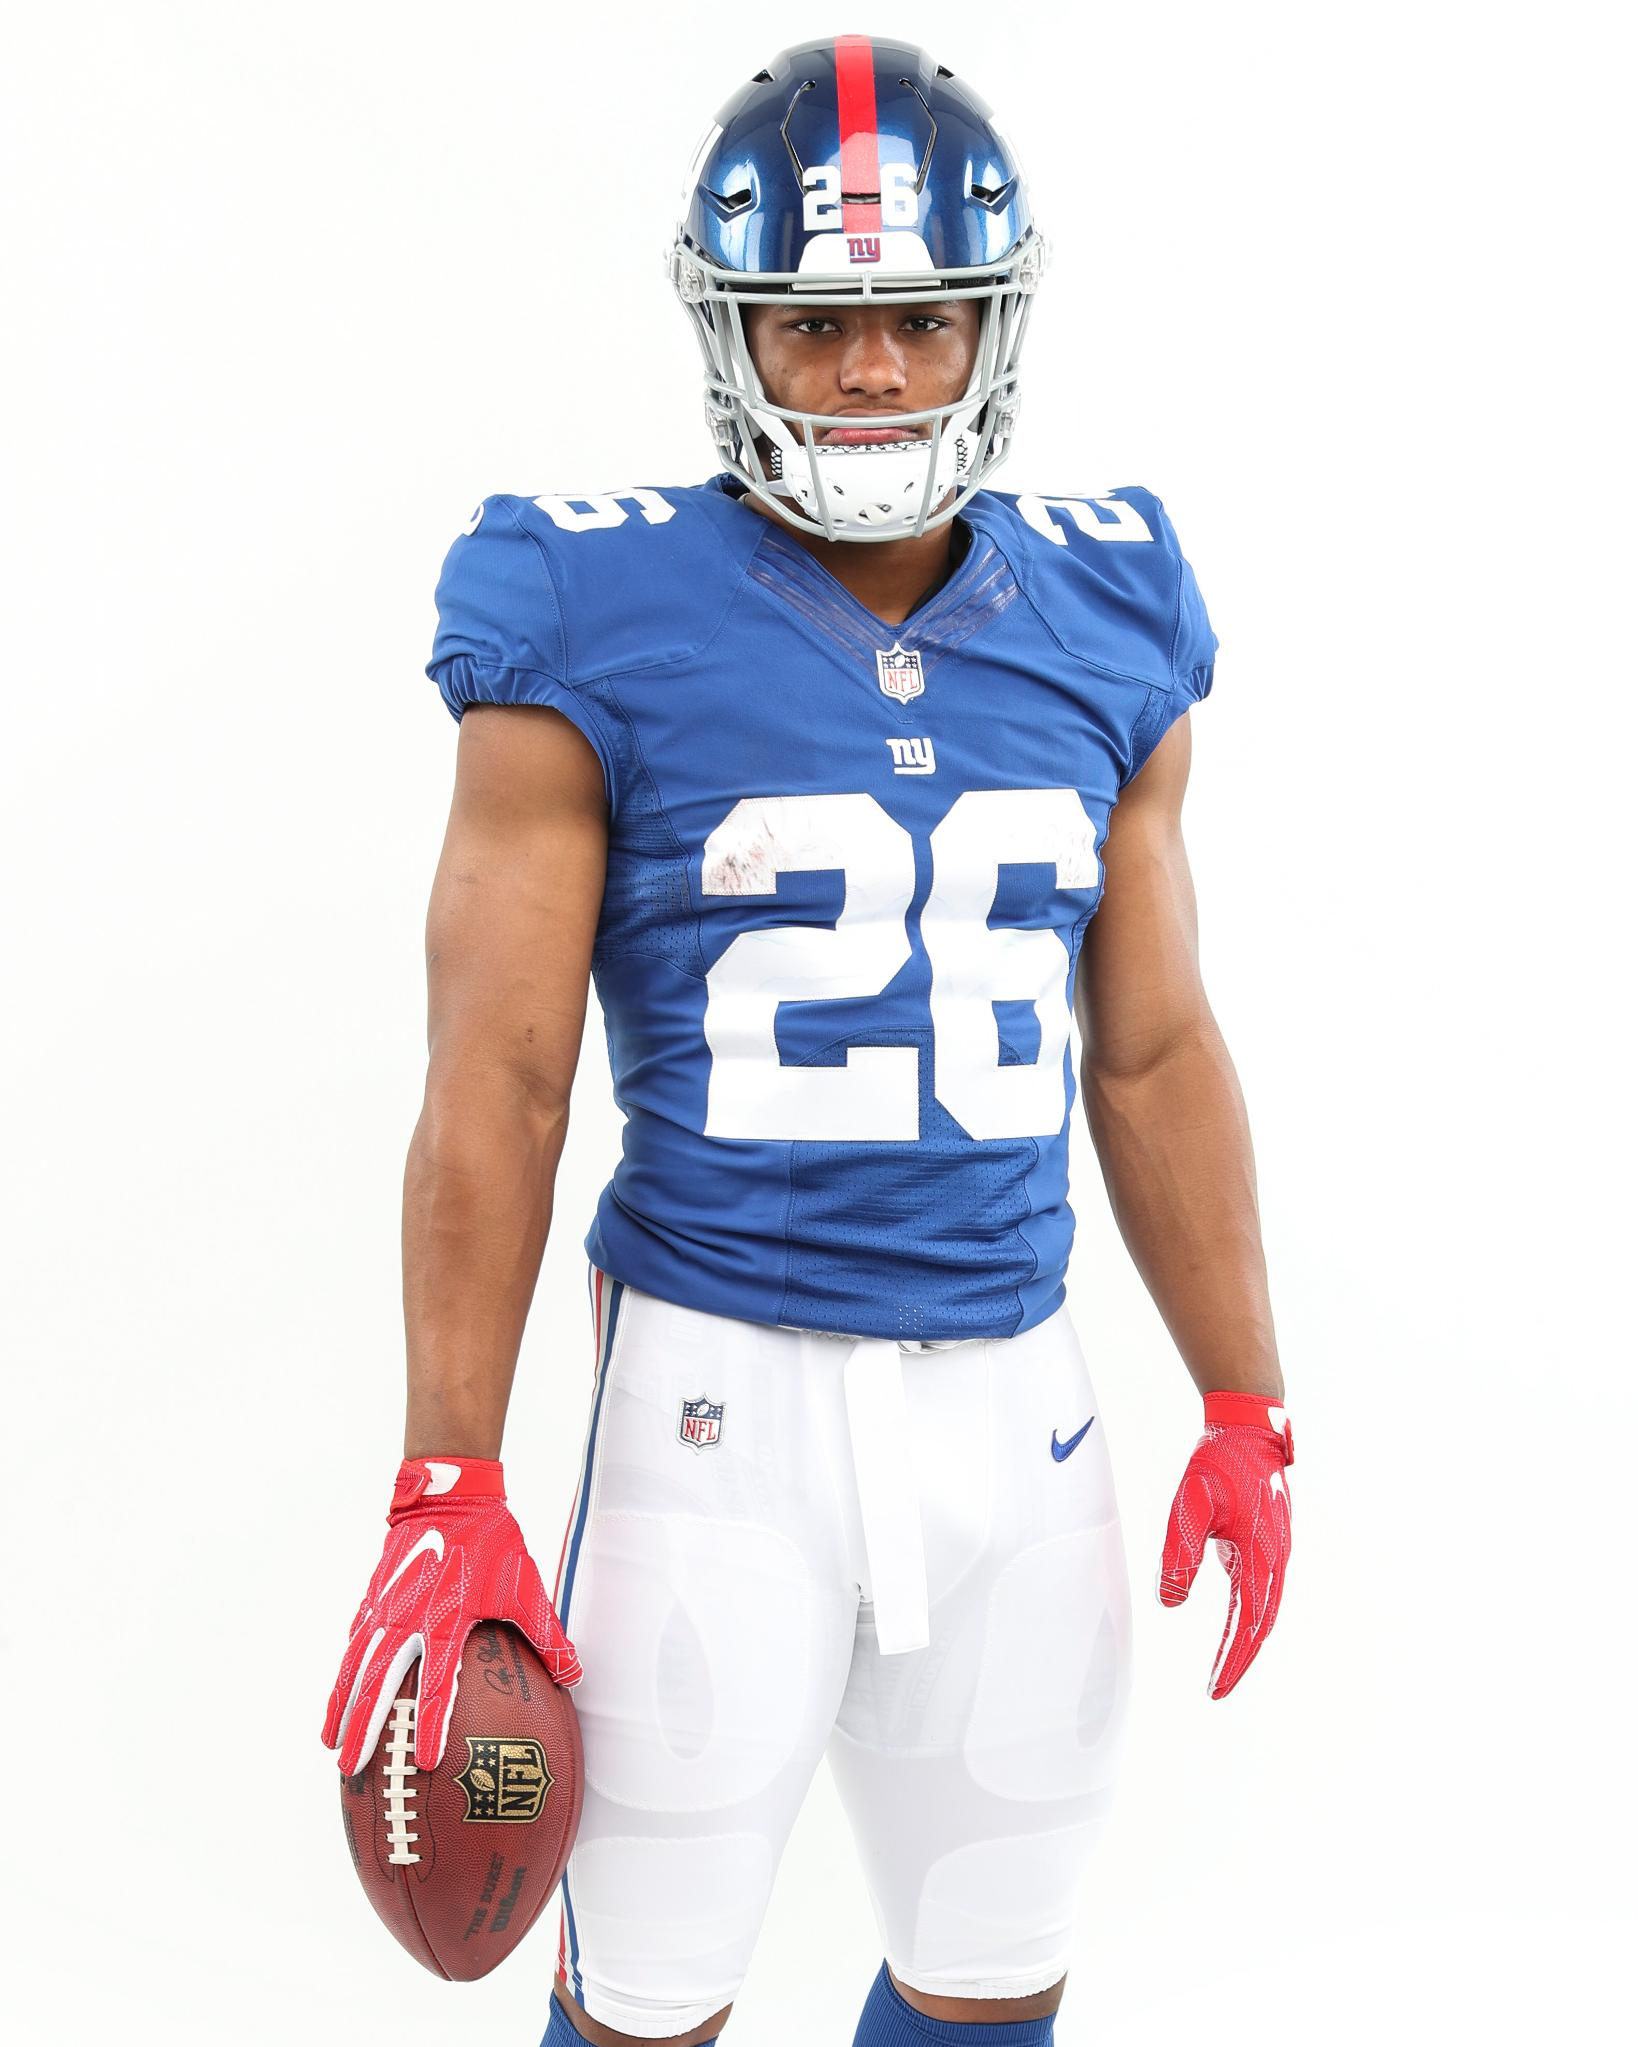 .@saquon will rush for ____ yards in 2018. #RookiePremiere https://t.co/Tud7AuMJun